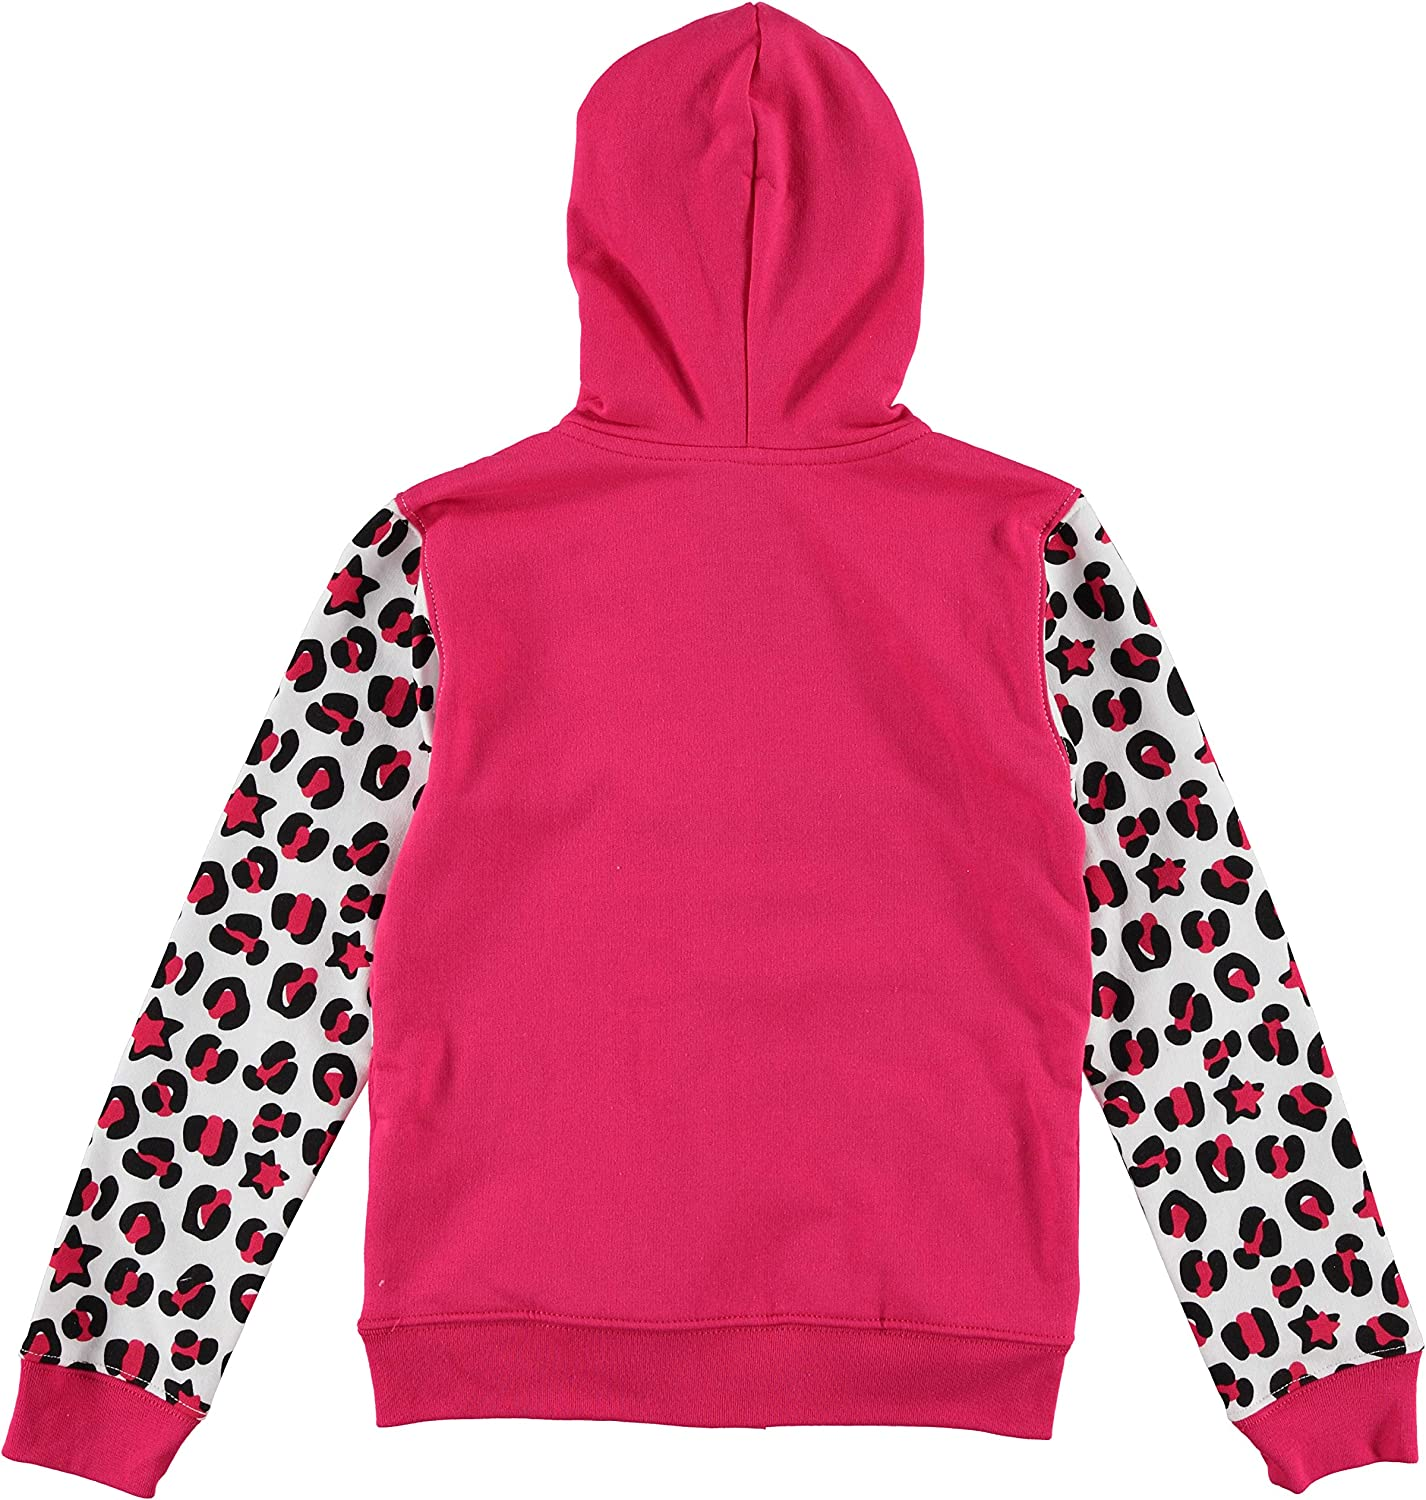 Surprise L.O.L Surprise Girls Hoodie Sizes 4-16 Kitty Queen,Diva /& All Over Print L.O.L Girls Zip up Sweatshirt